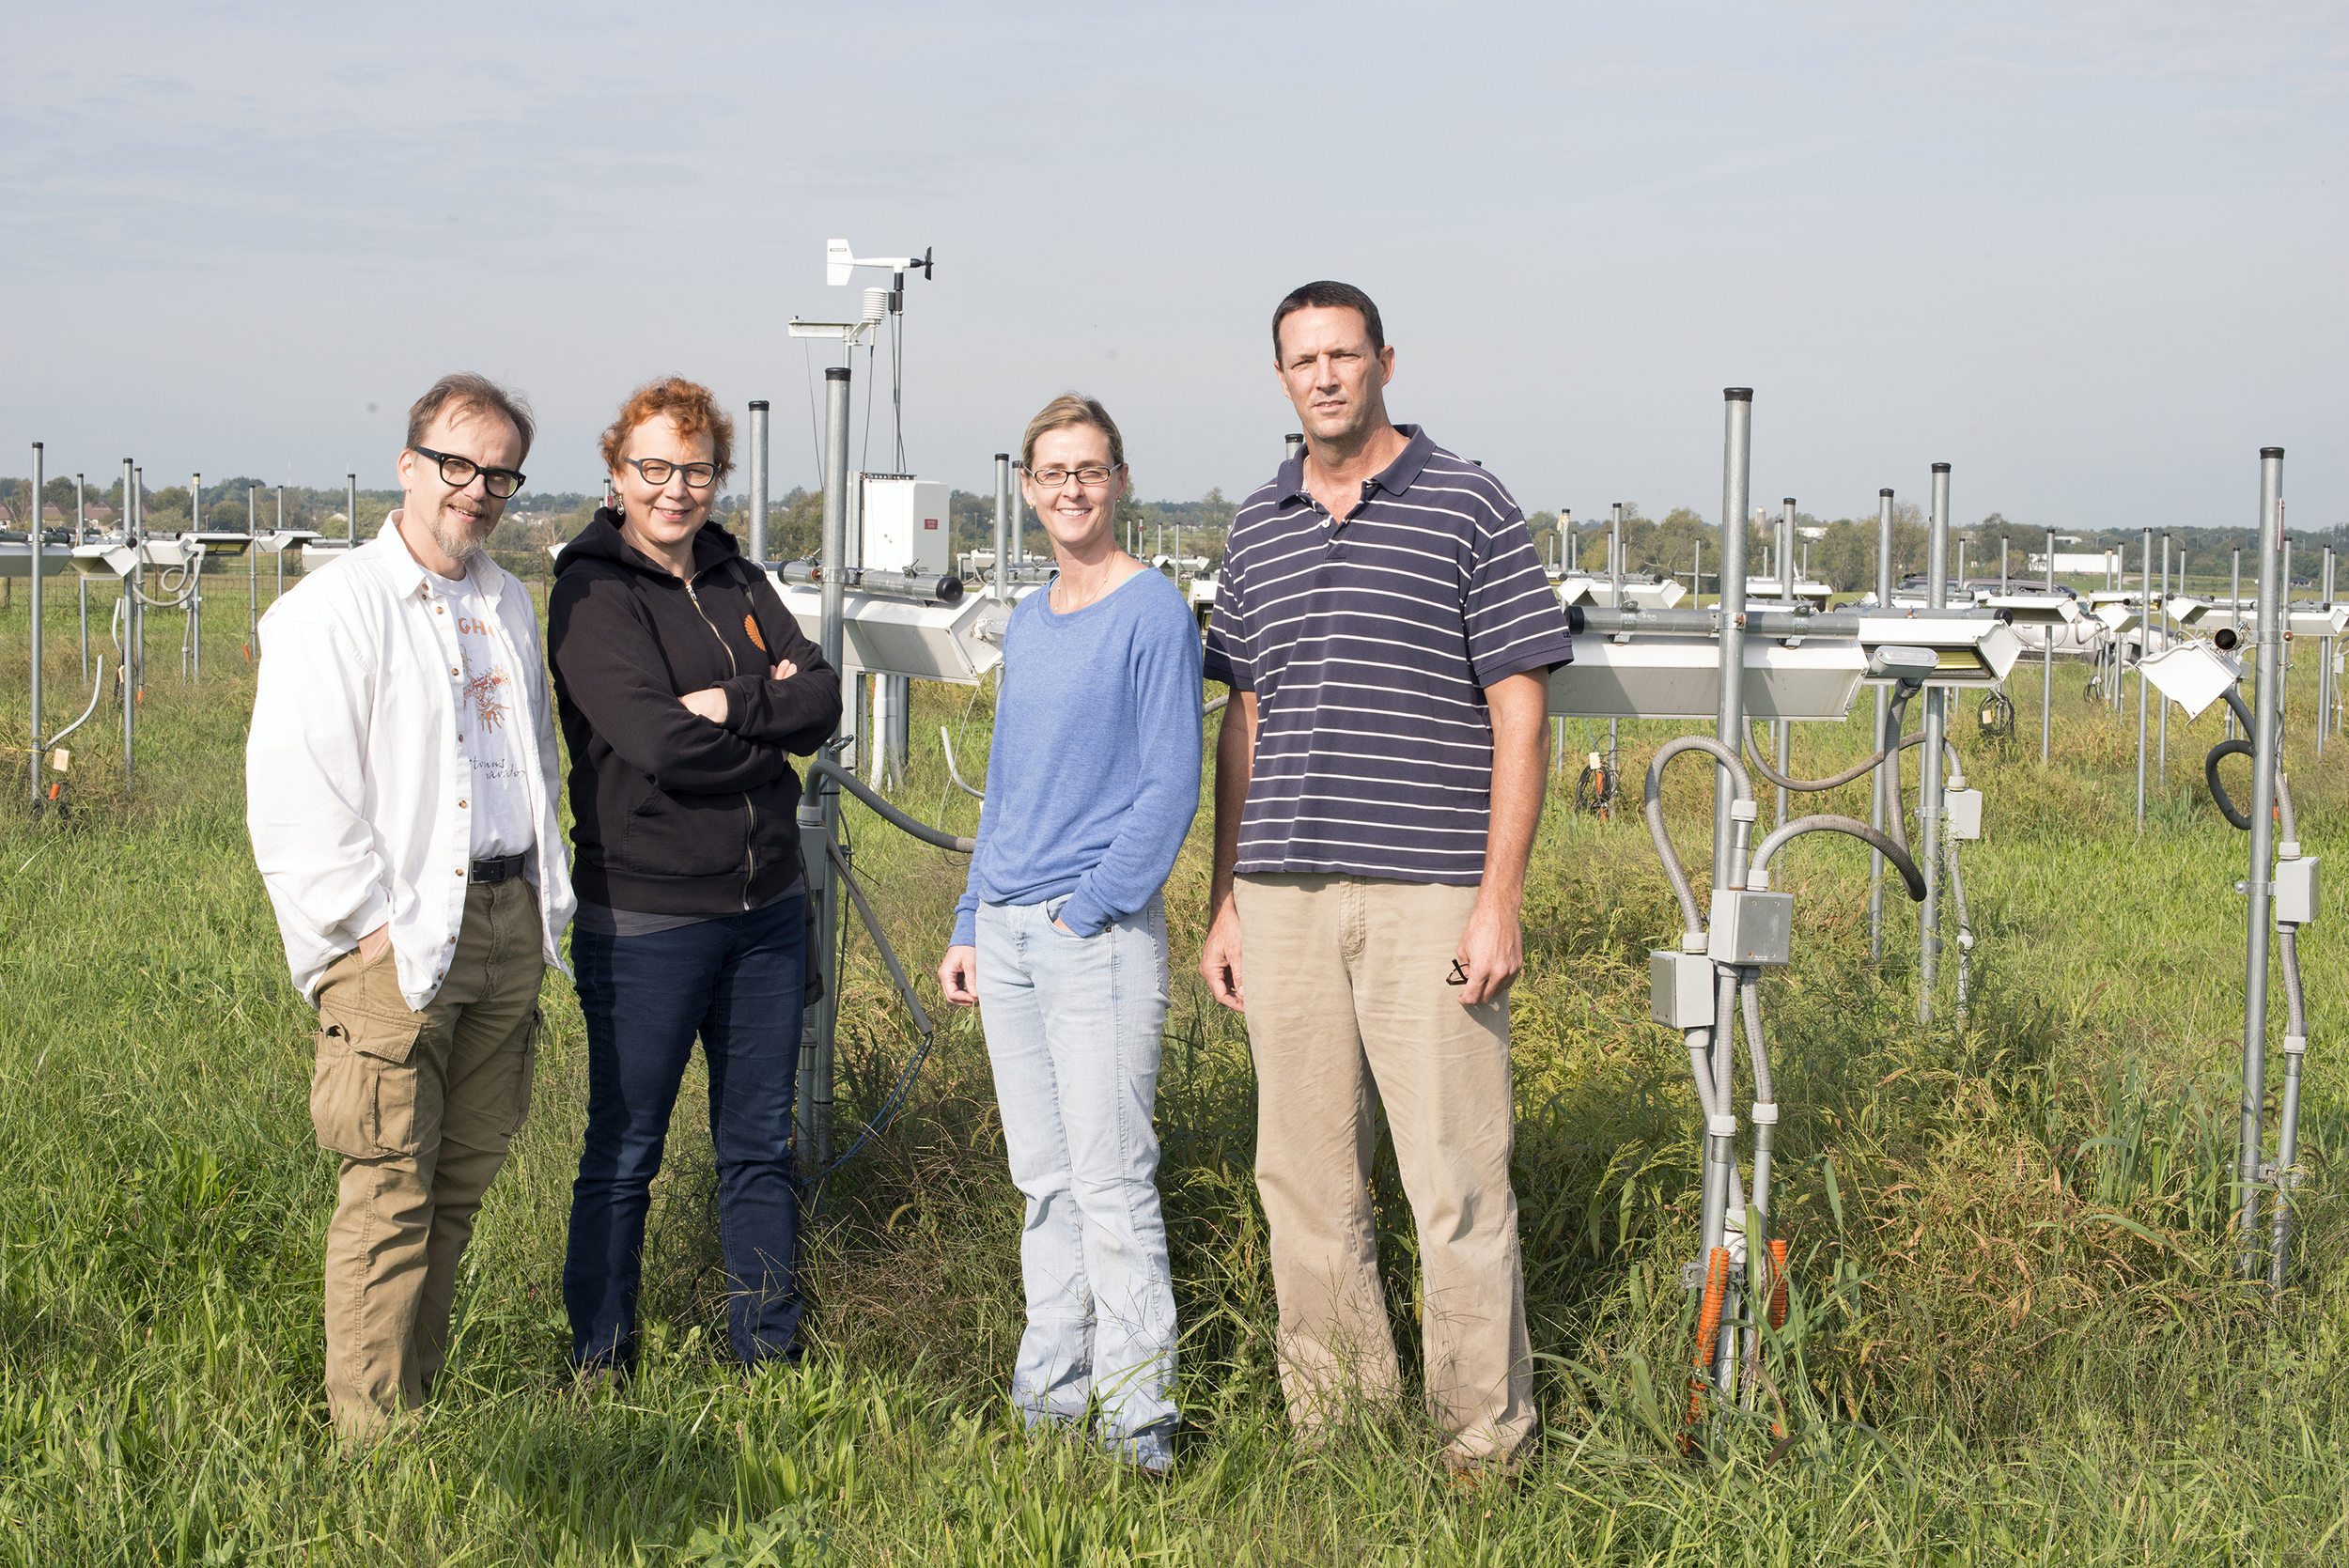 Kari and Marjo (Left) with Rebecca and Jim at the UK climate change project in Lexington.